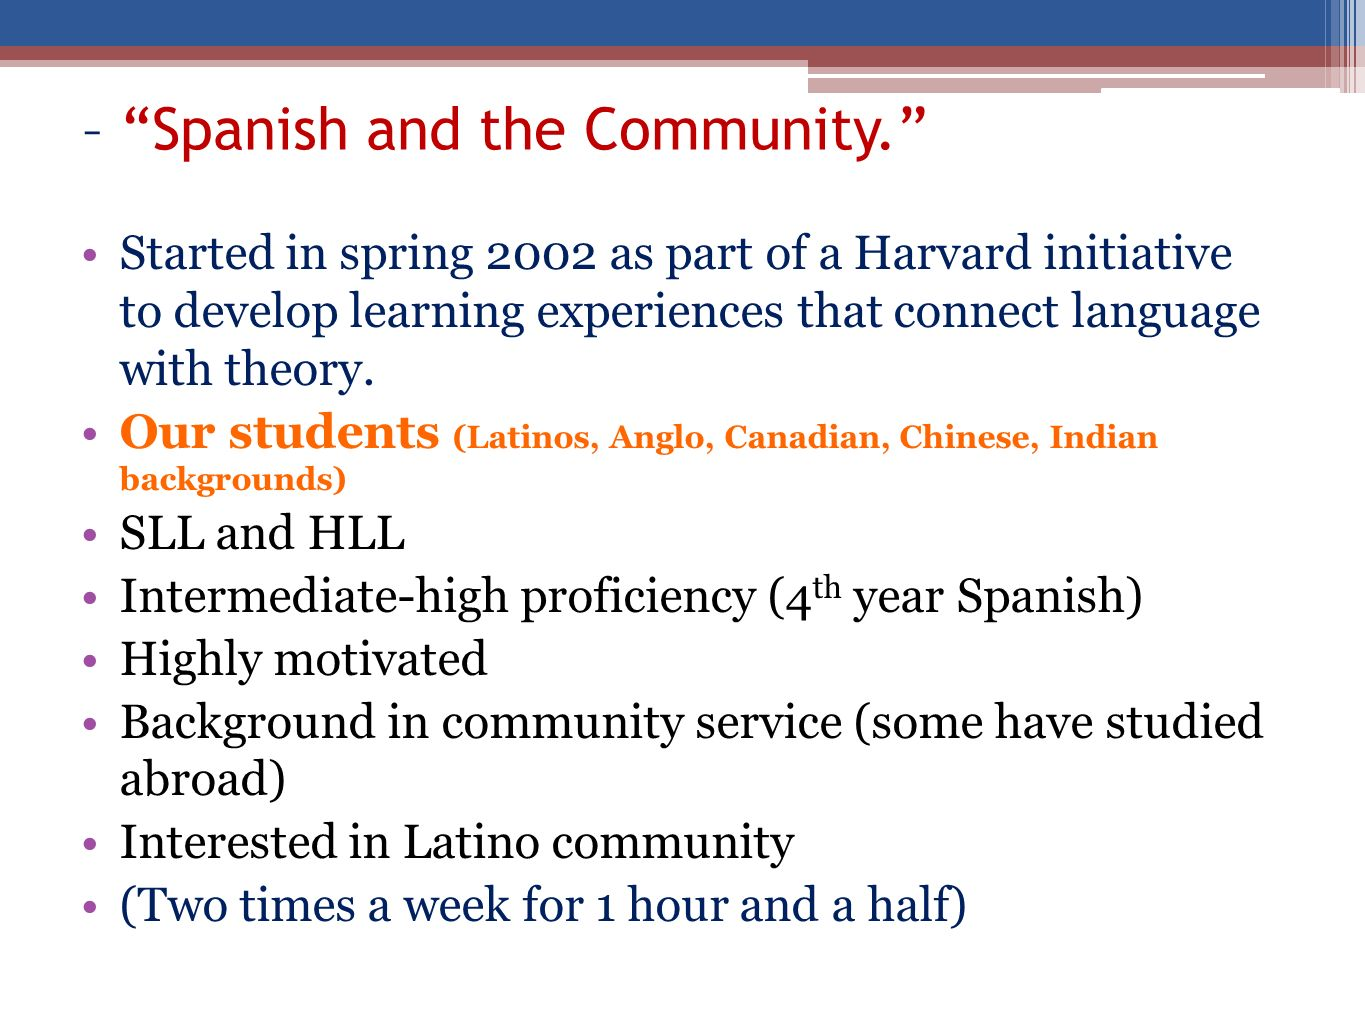 – Spanish and the Community. Started in spring 2002 as part of a Harvard initiative to develop learning experiences that connect language with theory.